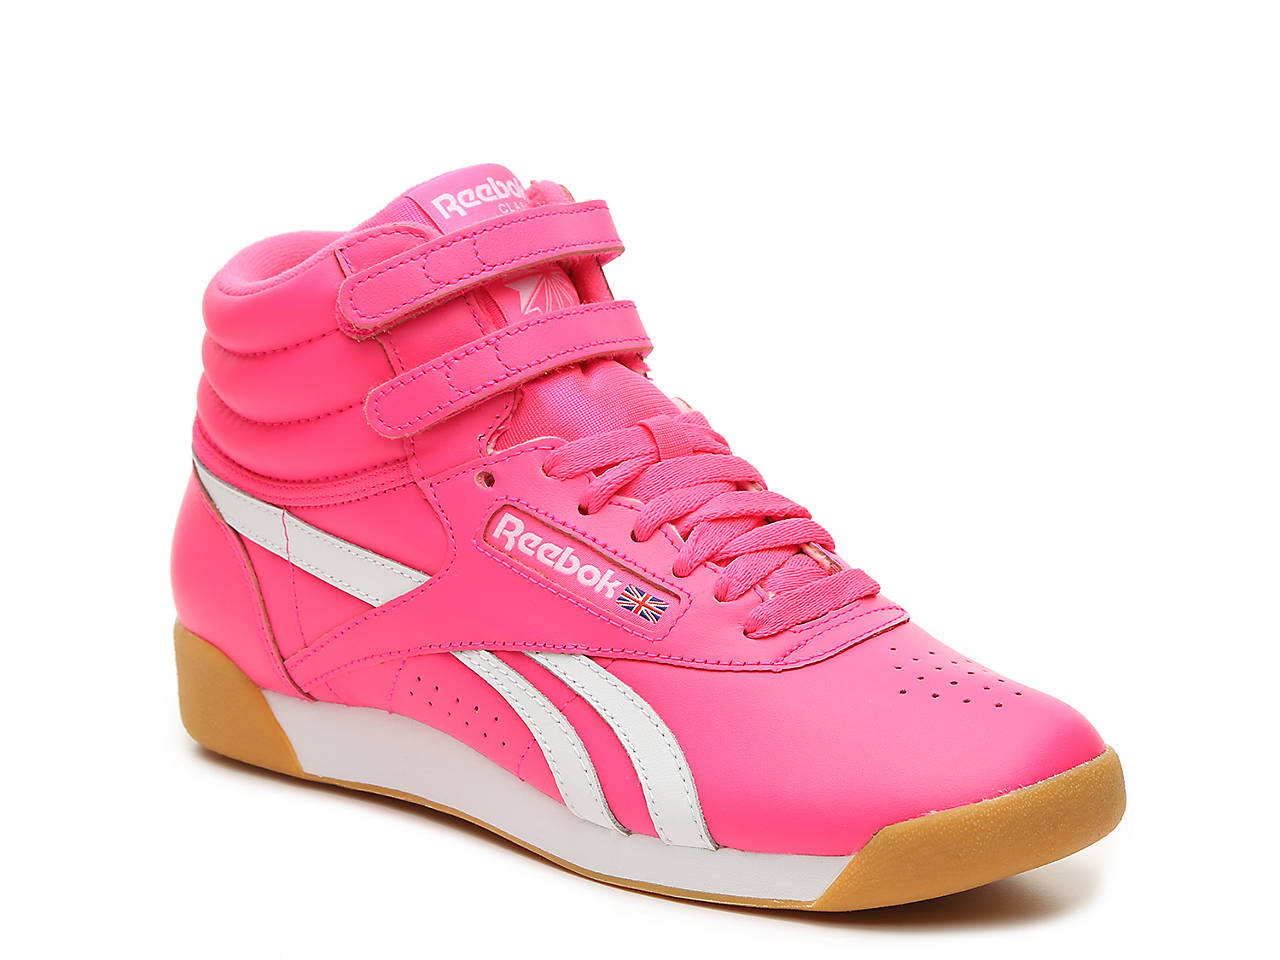 75234d65074 Reebok Classic High-Top Sneaker - Women s Women s Shoes